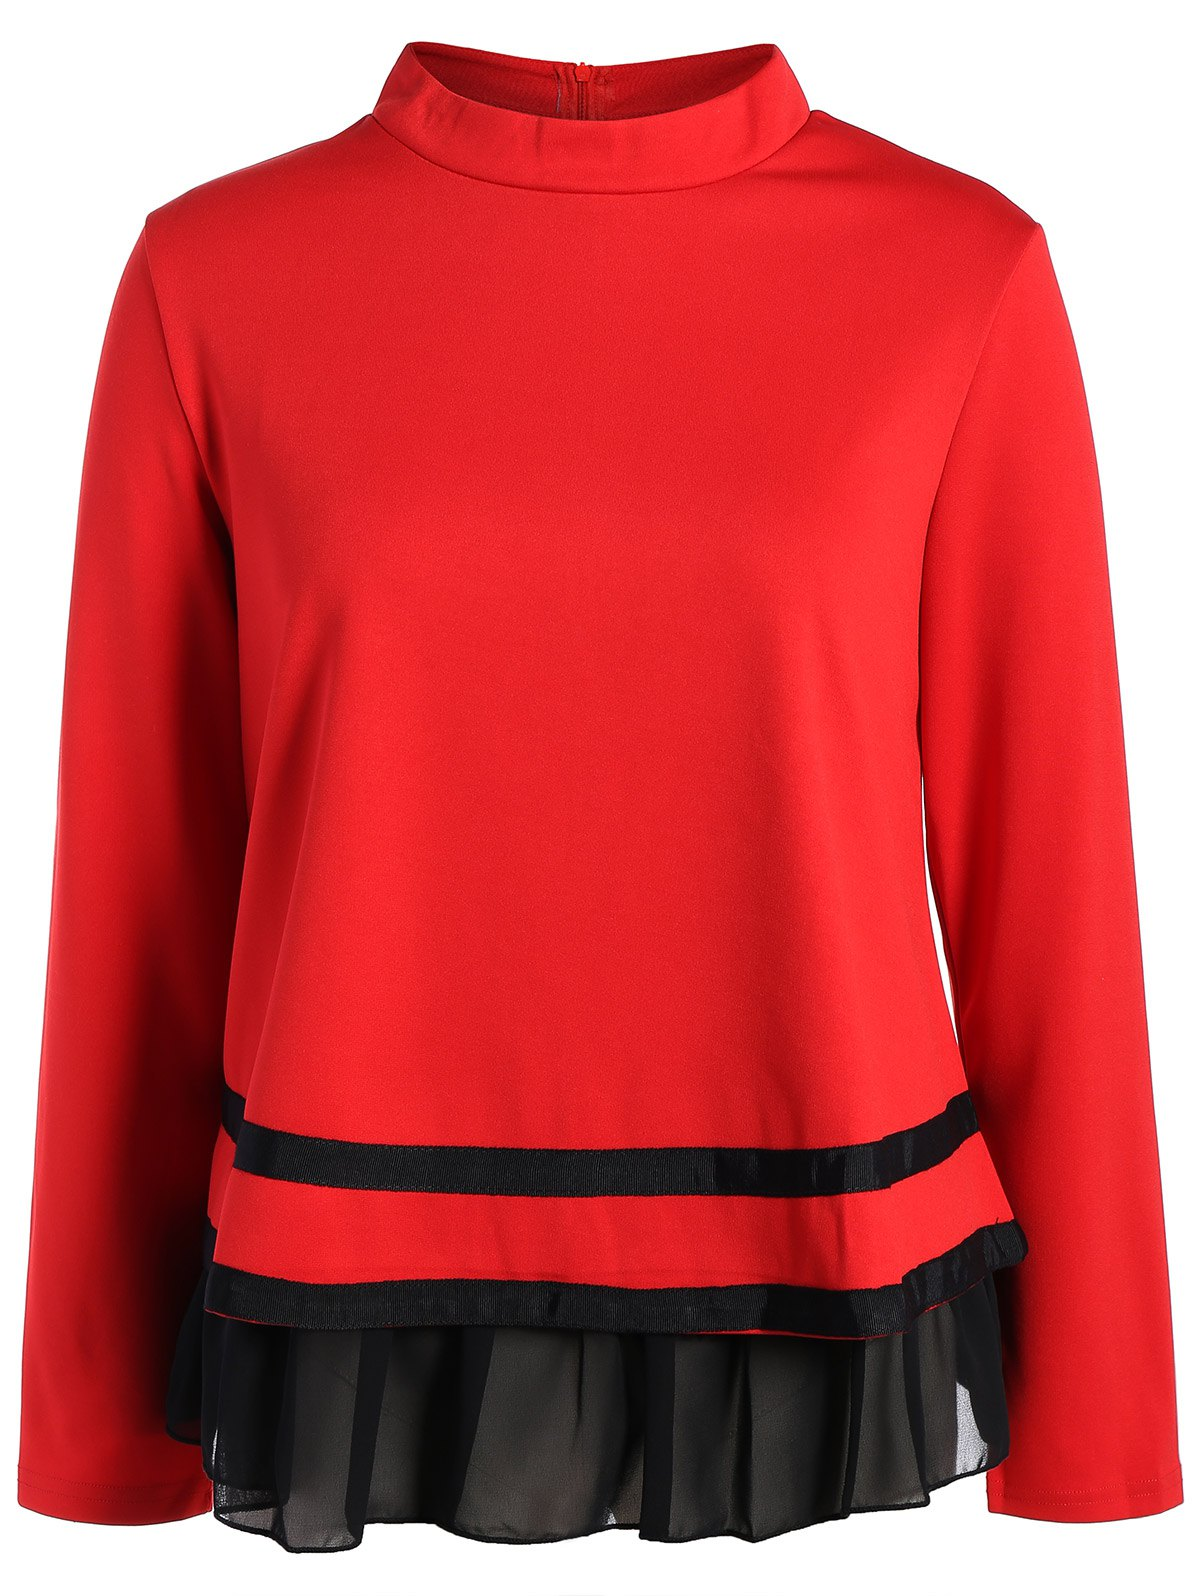 Plus Size Long Sleeve Chiffon Insert TeeWomen<br><br><br>Size: 3XL<br>Color: RED